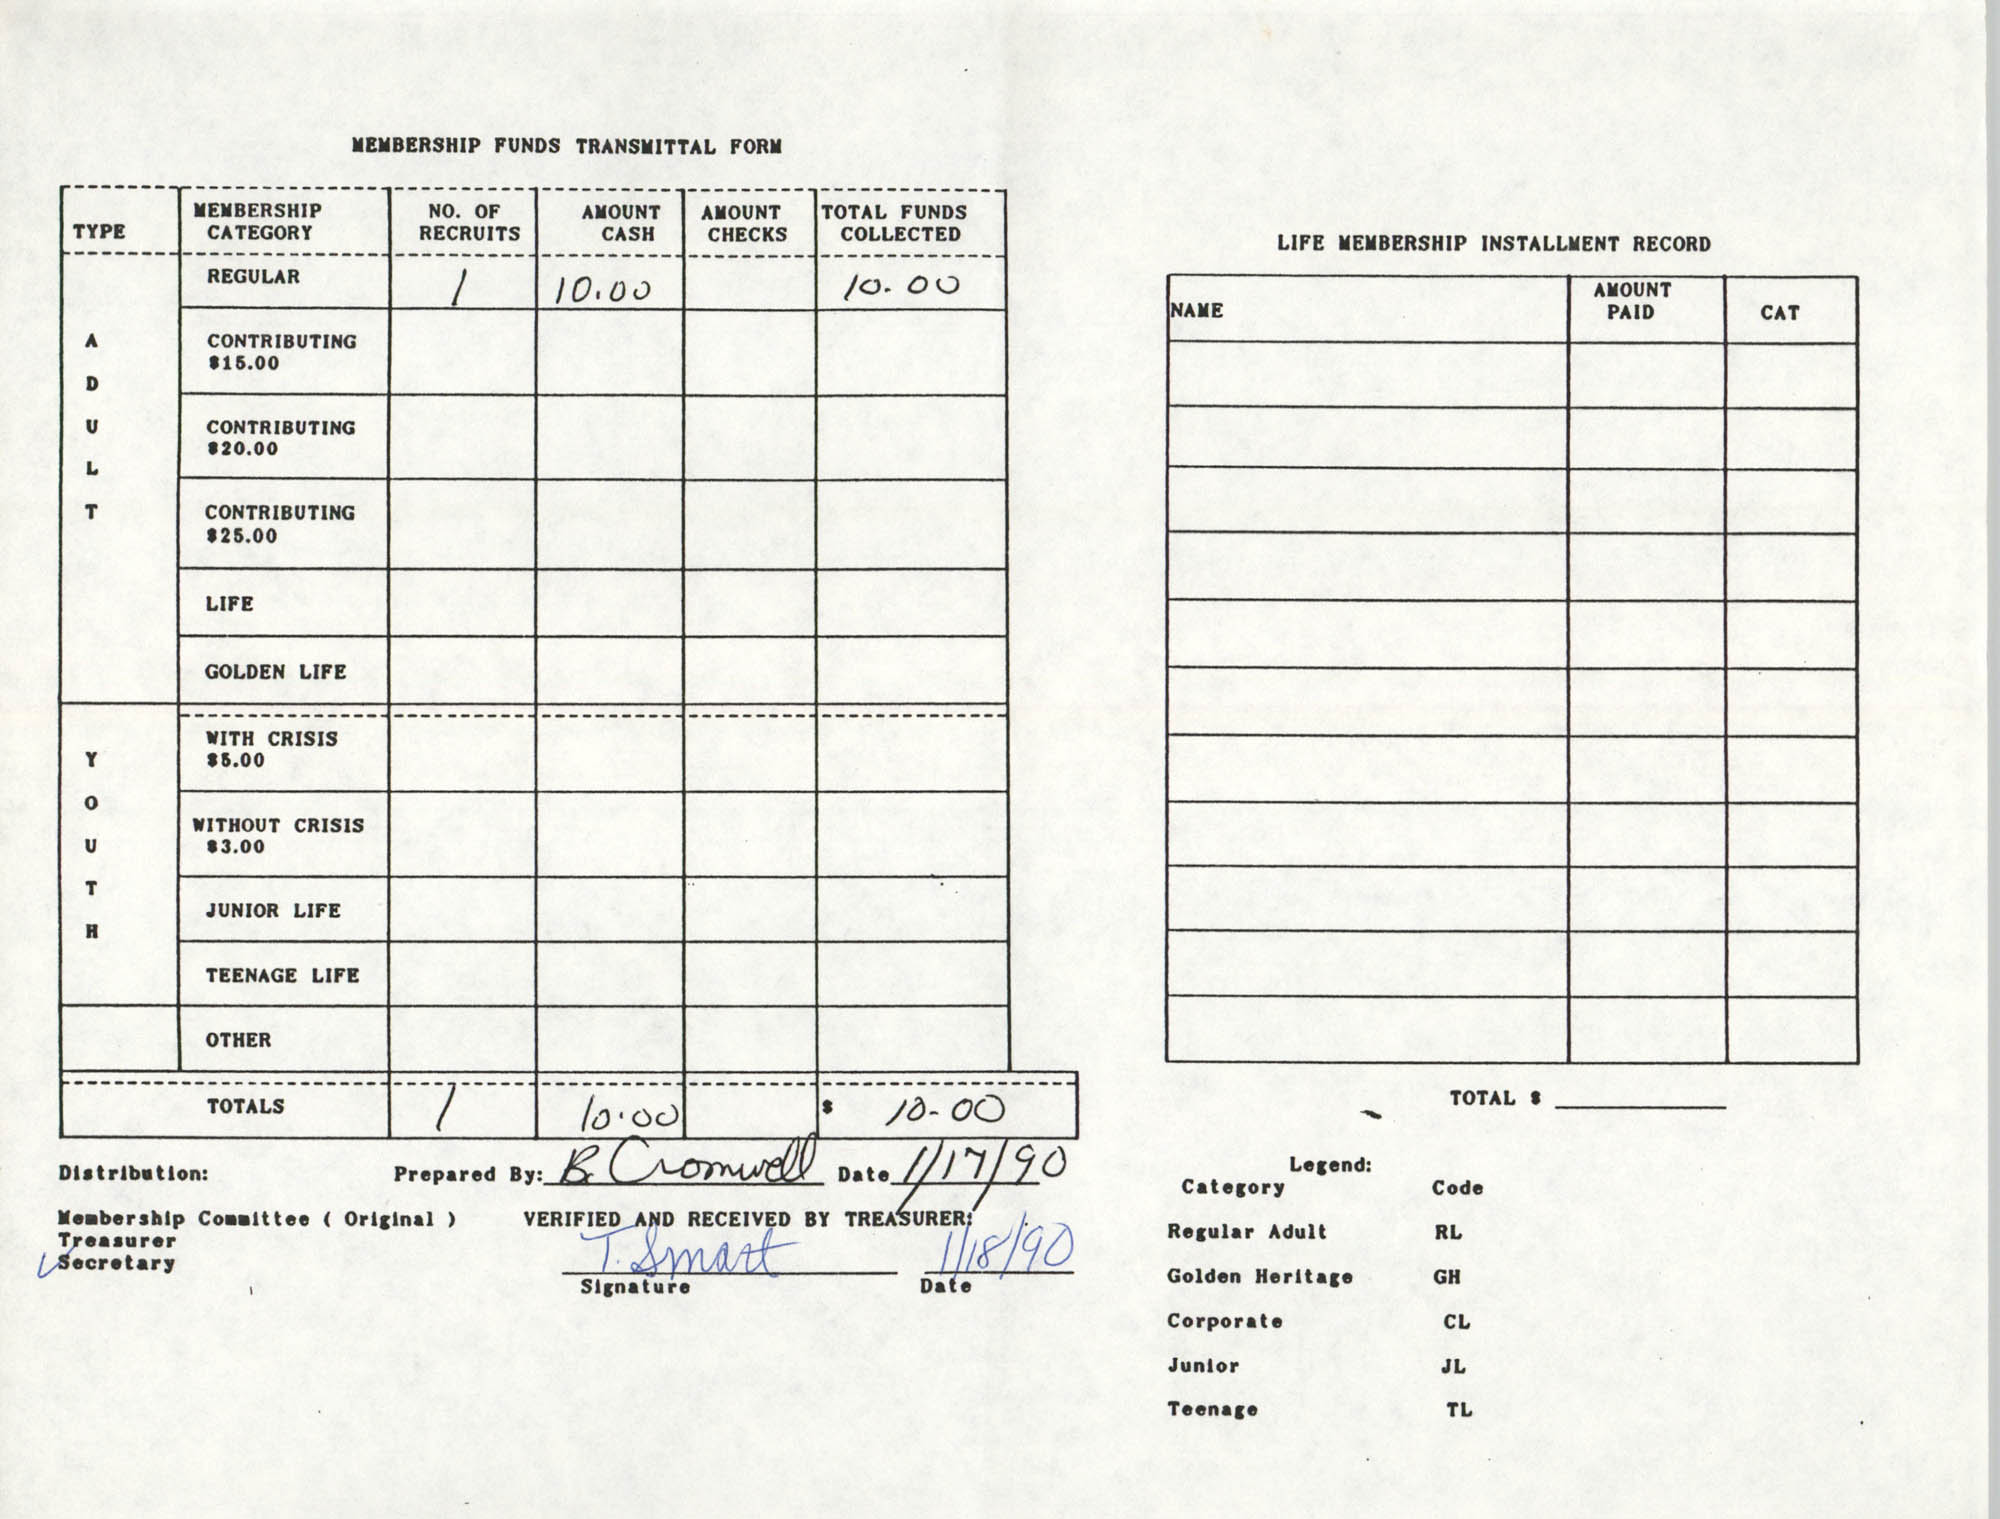 Charleston Branch of the NAACP Funds Transmittal Forms, January 1990, Page 7